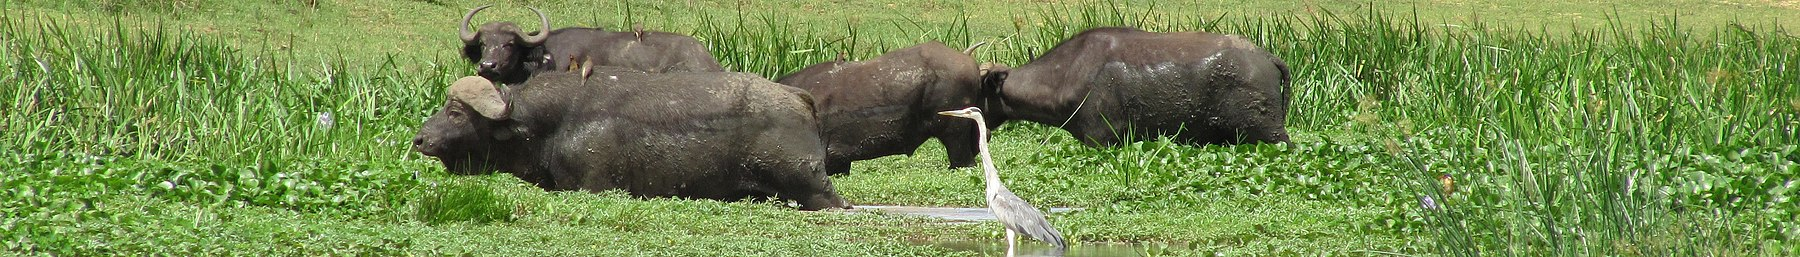 Murchison Falls National Park banner Animals near Nile.JPG